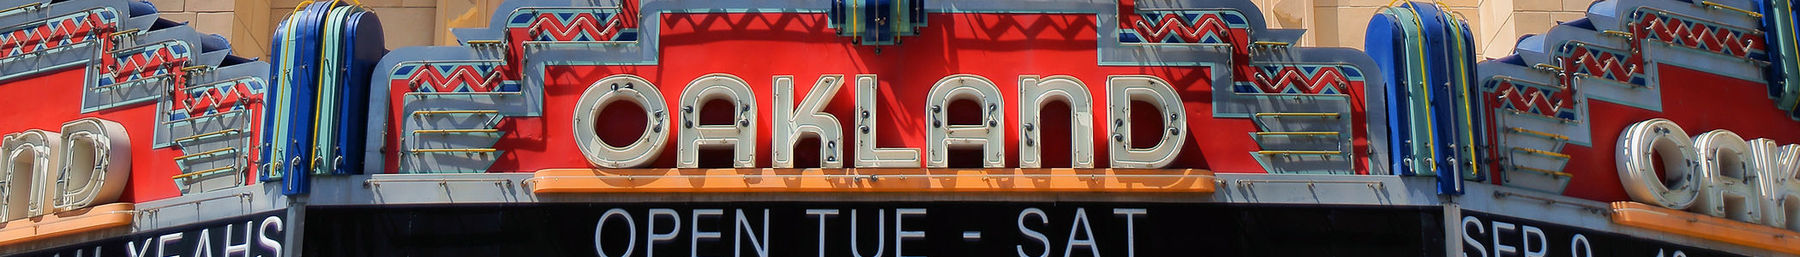 Oakland Fox Theatre banner.jpg